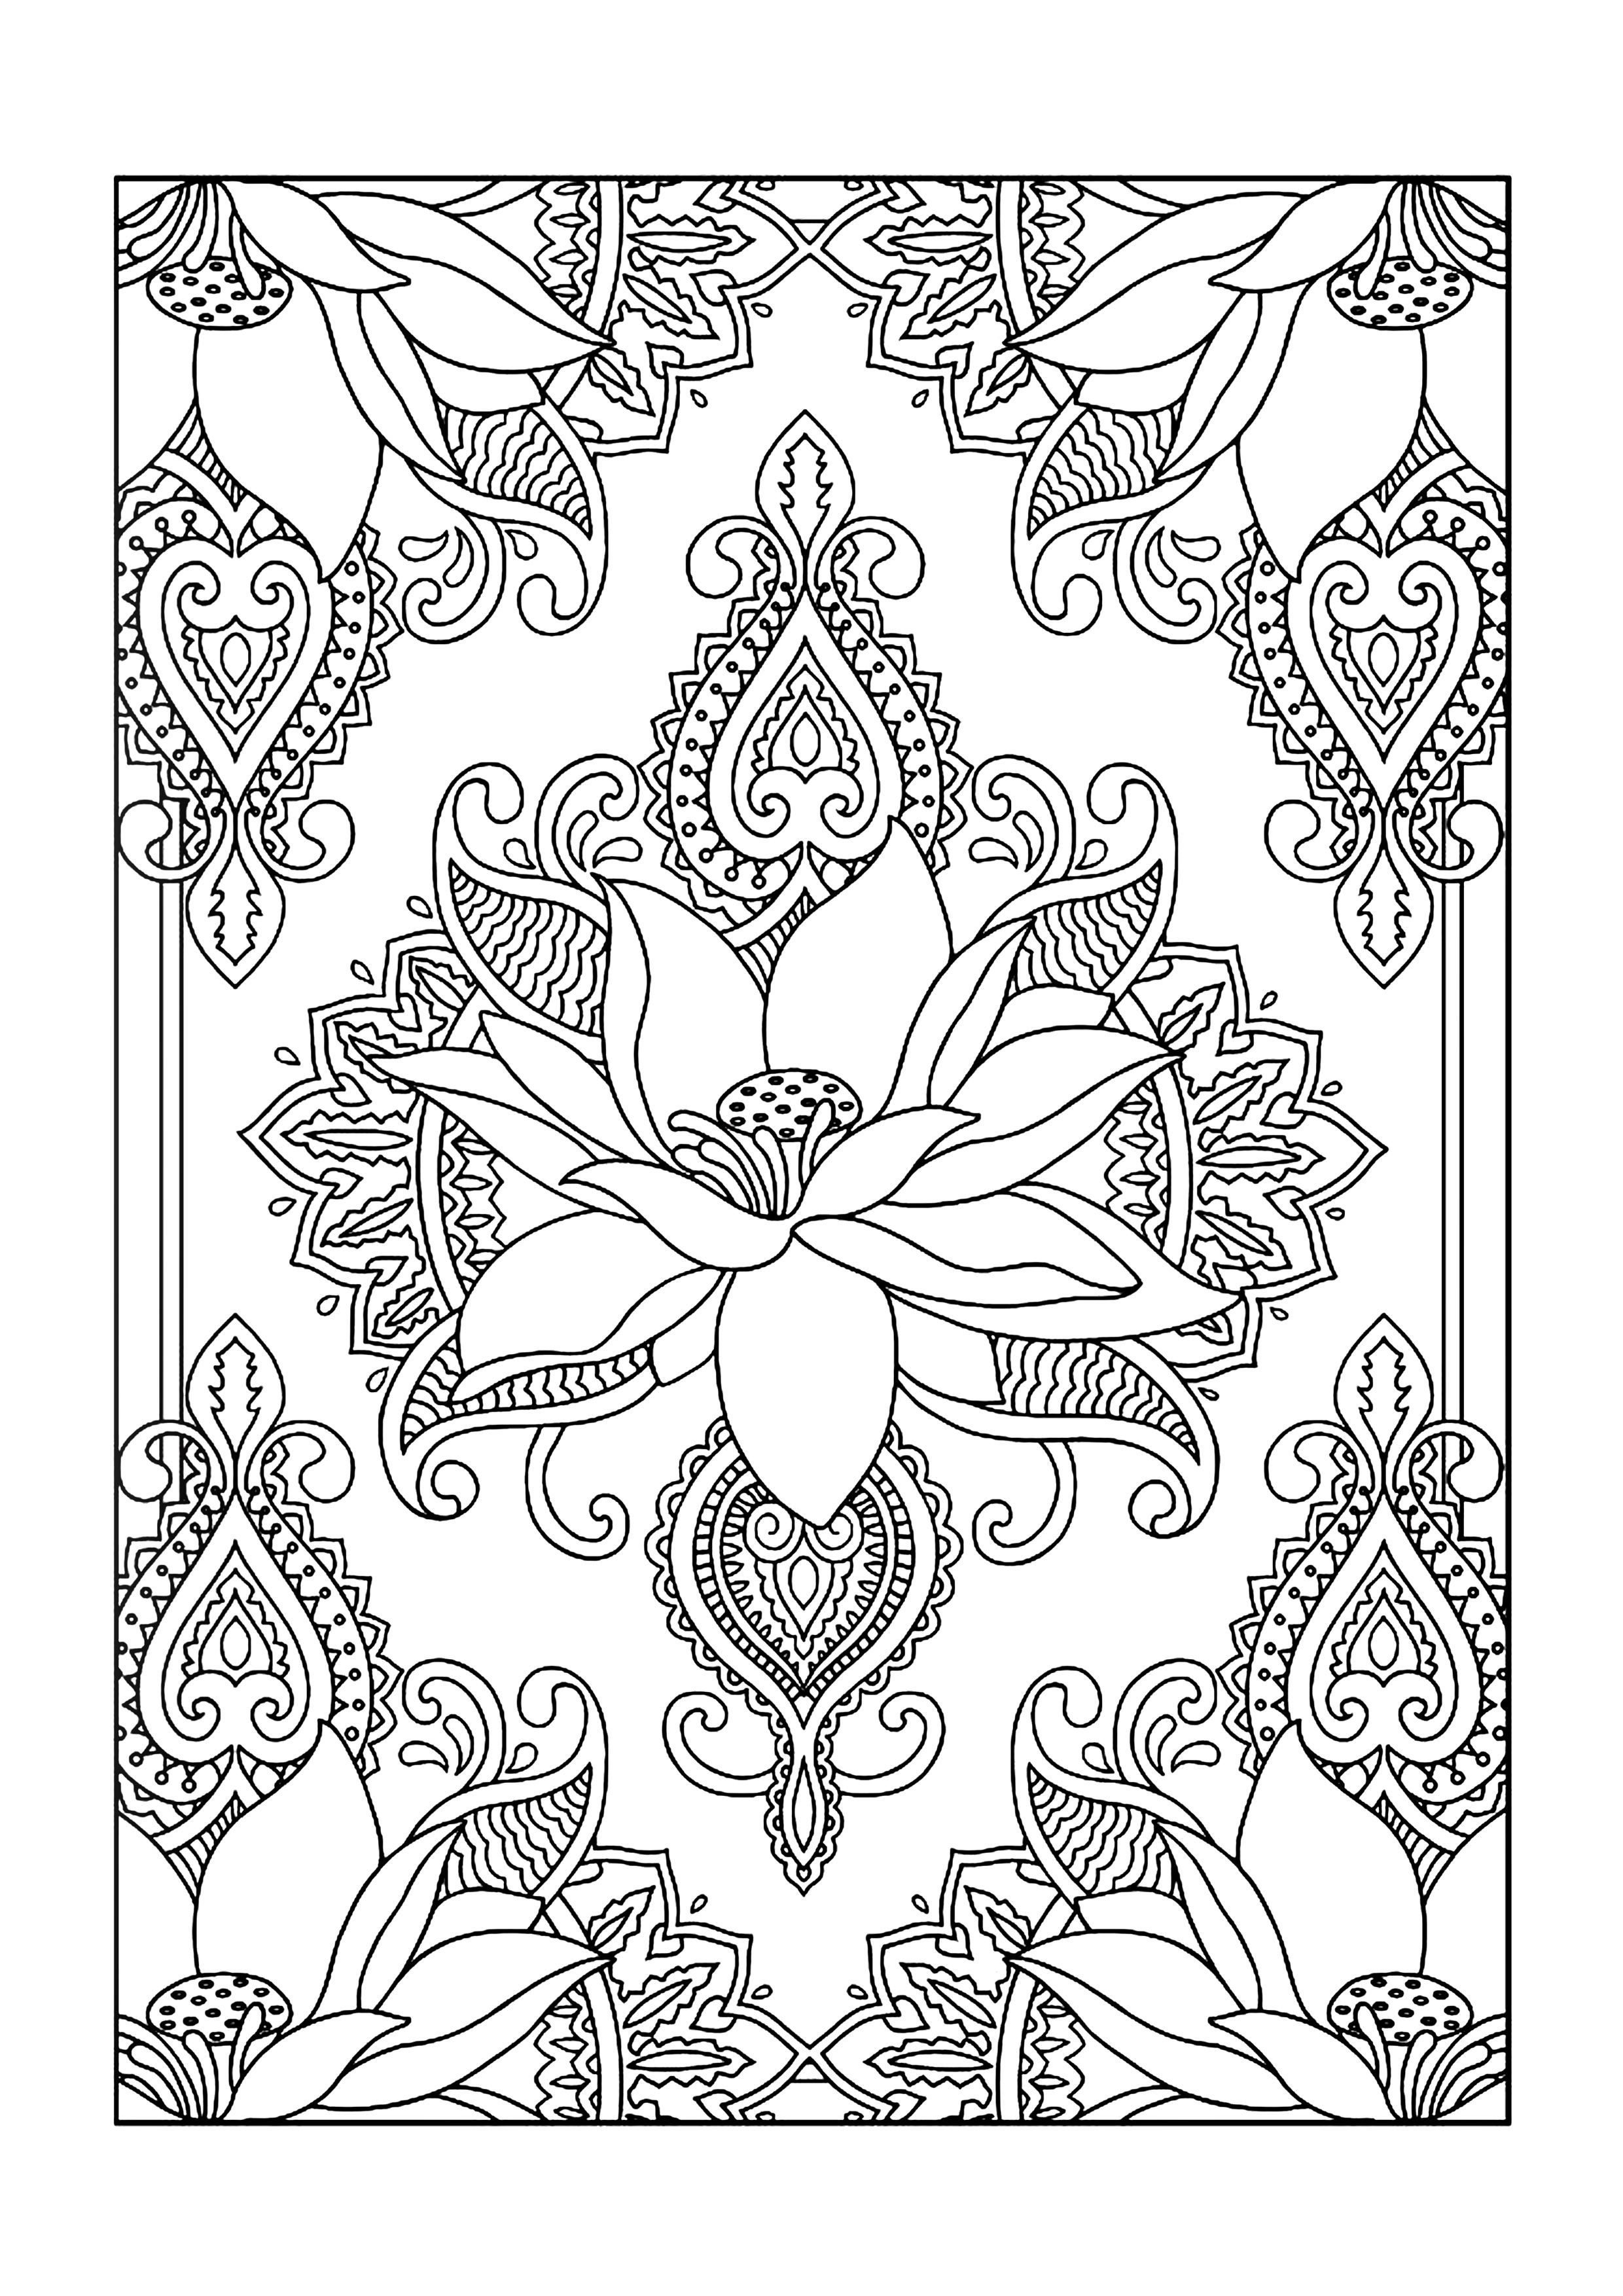 coloring pages for adults patterns coloring pages fascinating free geometric coloring pages coloring patterns for pages adults